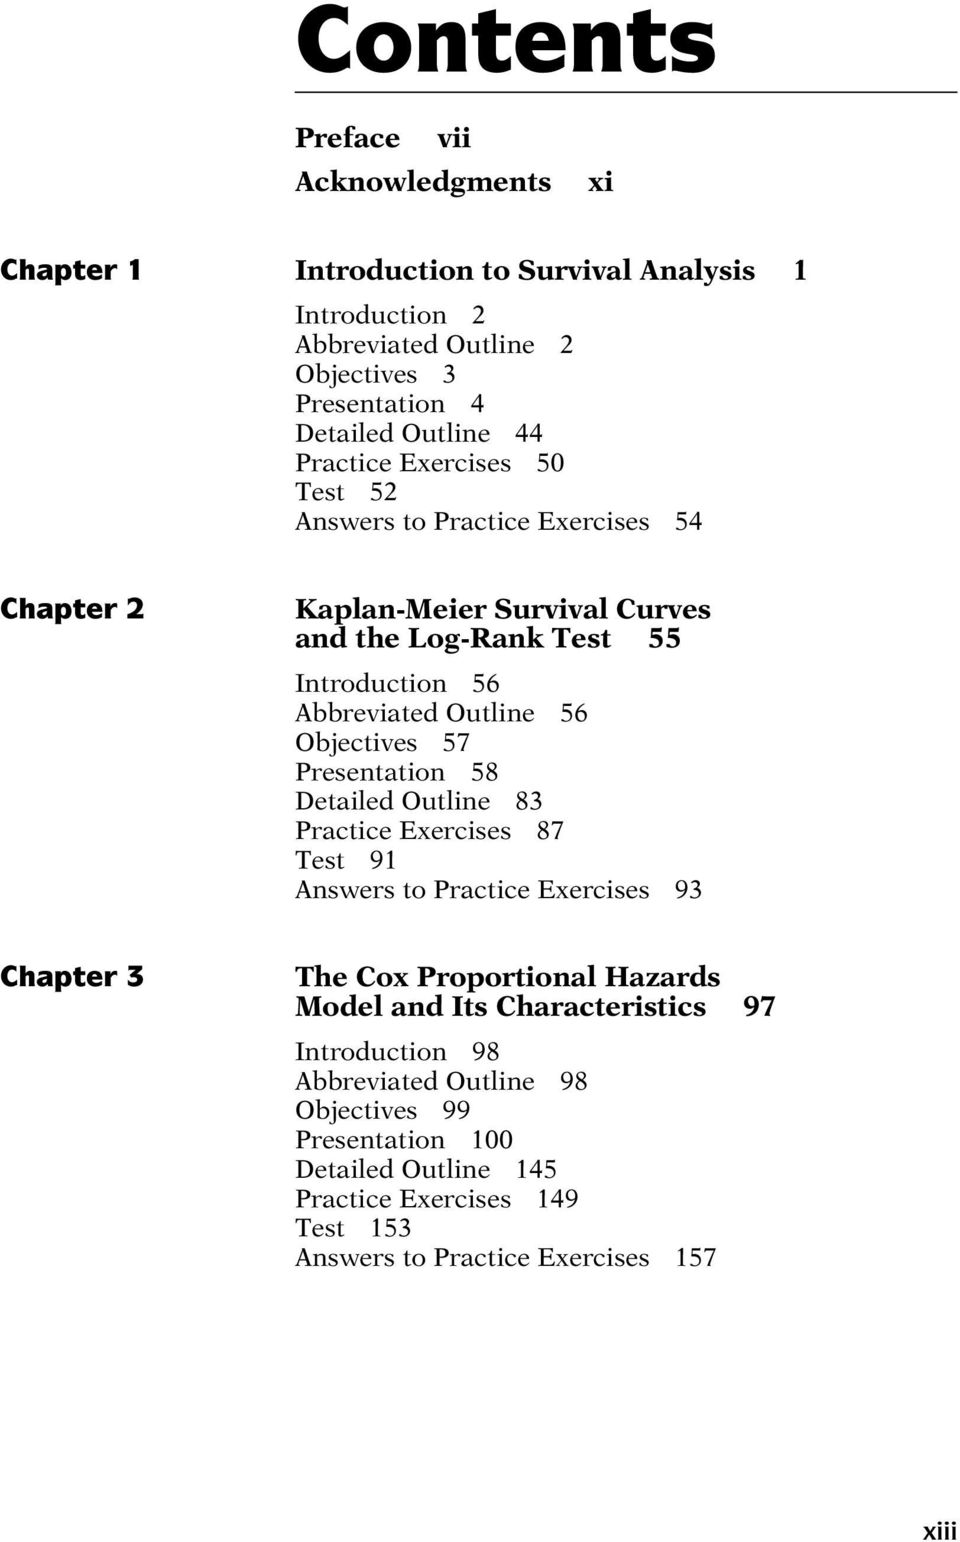 Objectives 57 Presentation 58 Detailed Outline 83 Practice Exercises 87 Test 91 Answers to Practice Exercises 93 Chapter 3 The Cox Proportional Hazards Model and Its